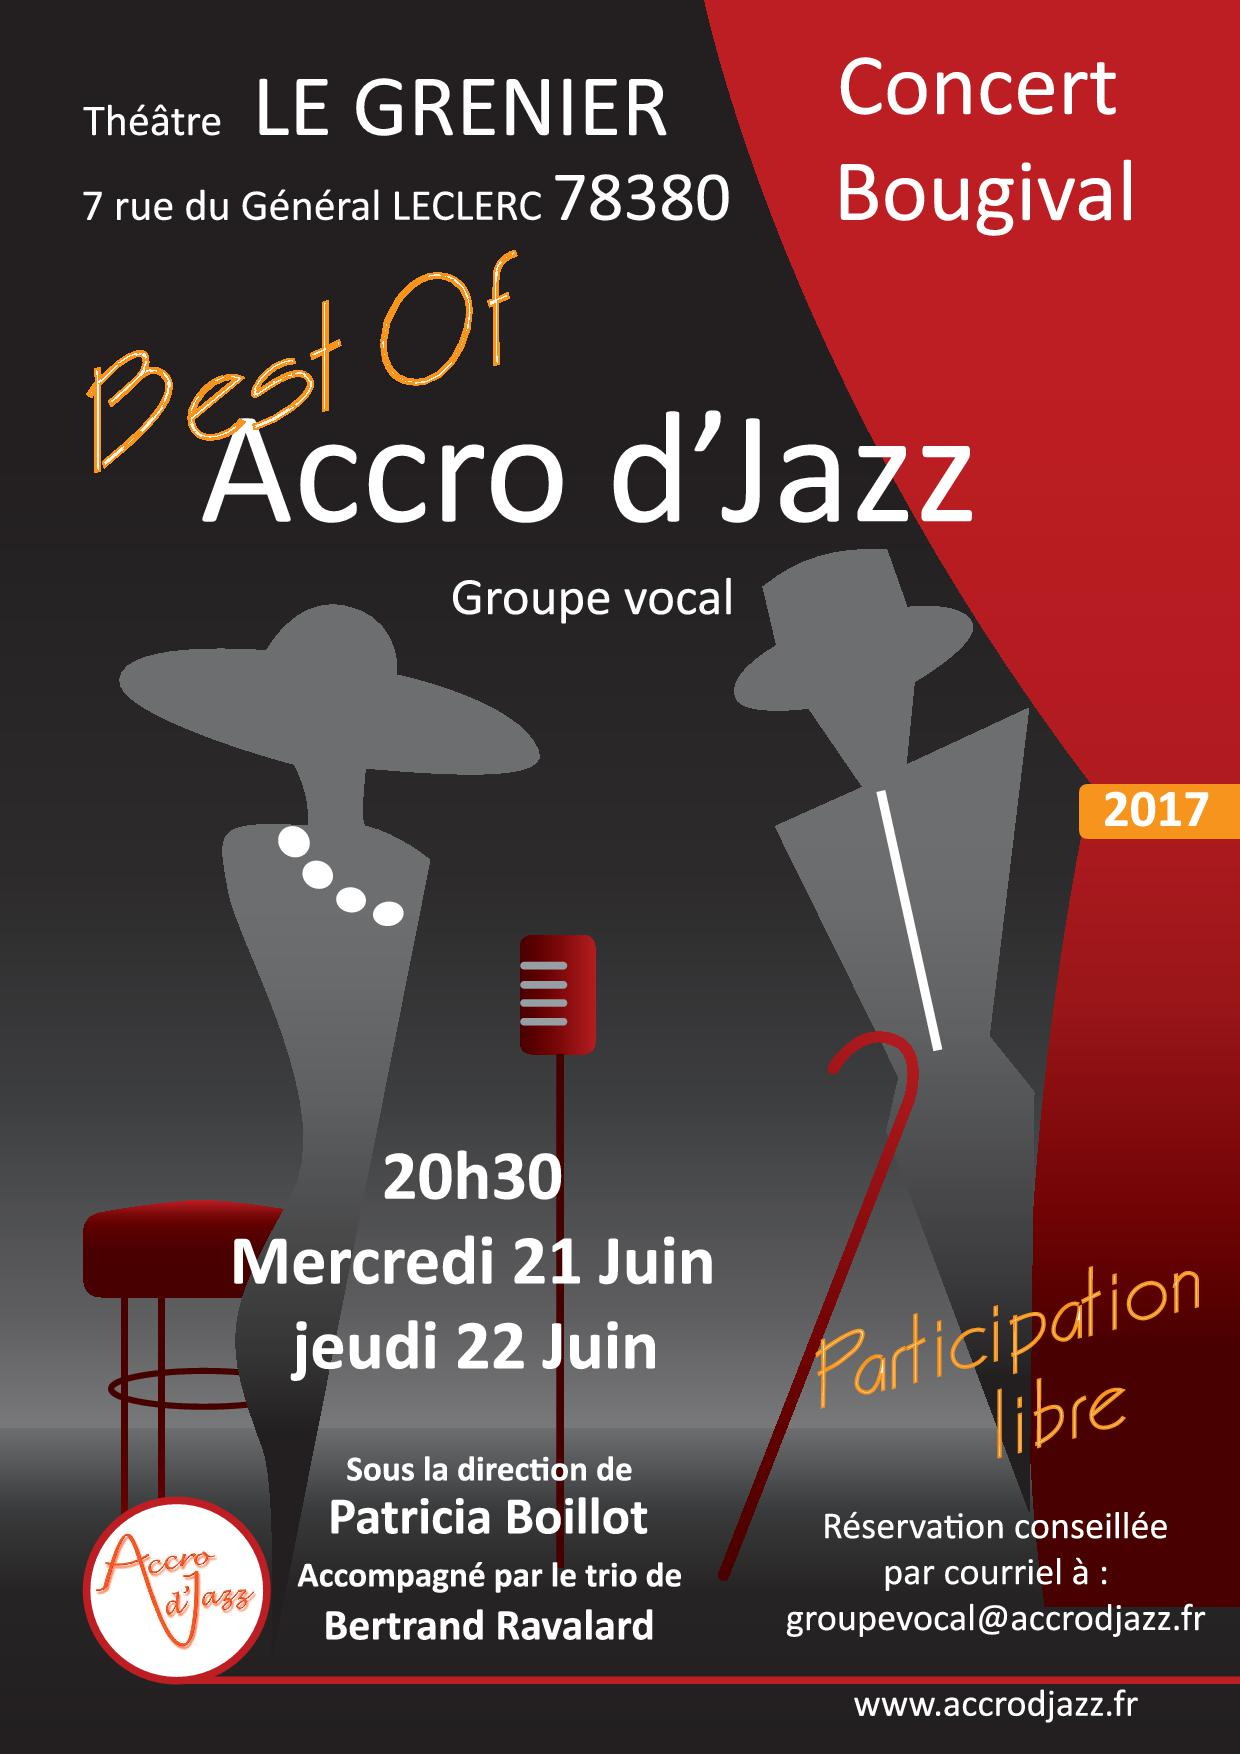 AFFICHE CONCERT ACCRODJAZZ Best-of Juin 2017